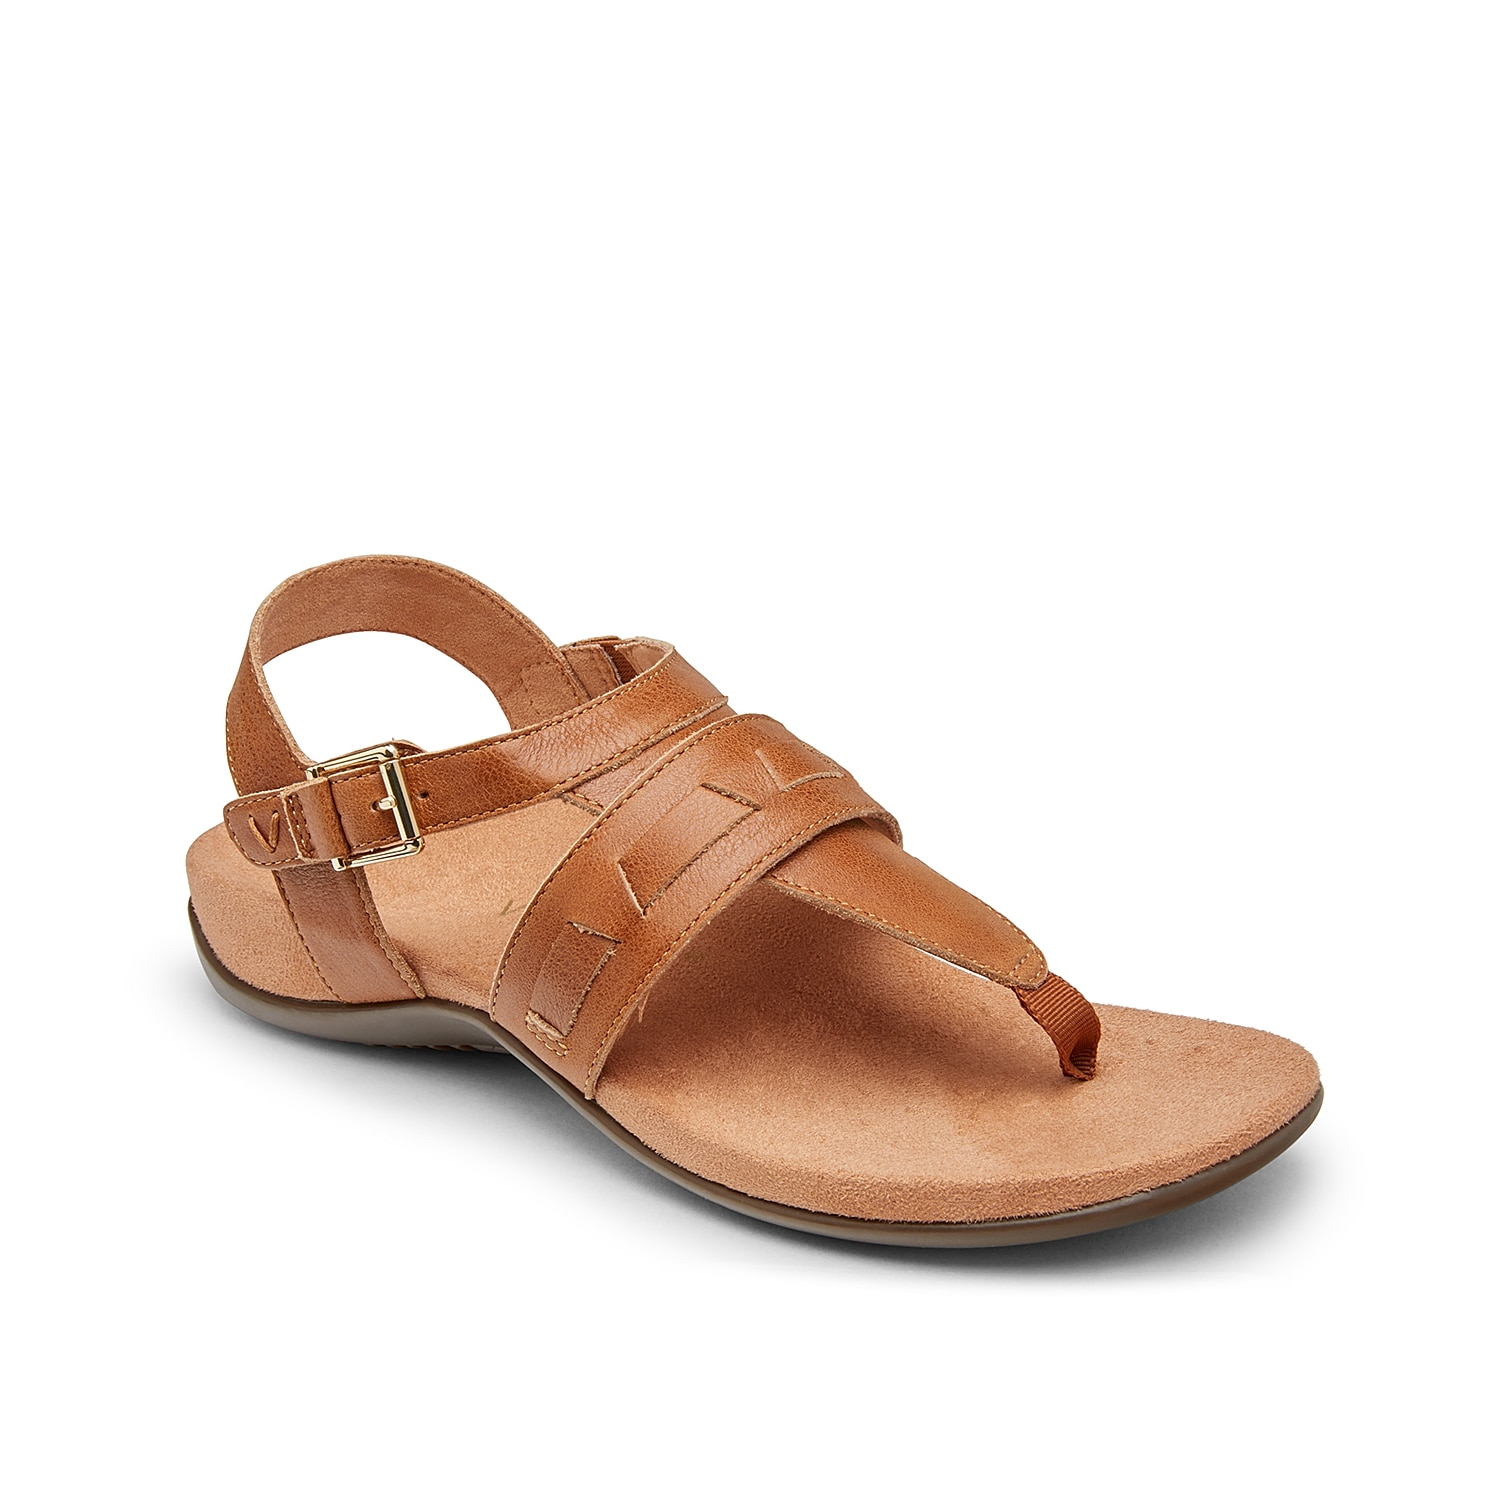 Classic summer style gets a comfortable update with the Lupe sandal from Vionic. This leather pair features a contoured footbed and supportive t-strap to keep you feeling your best all day.